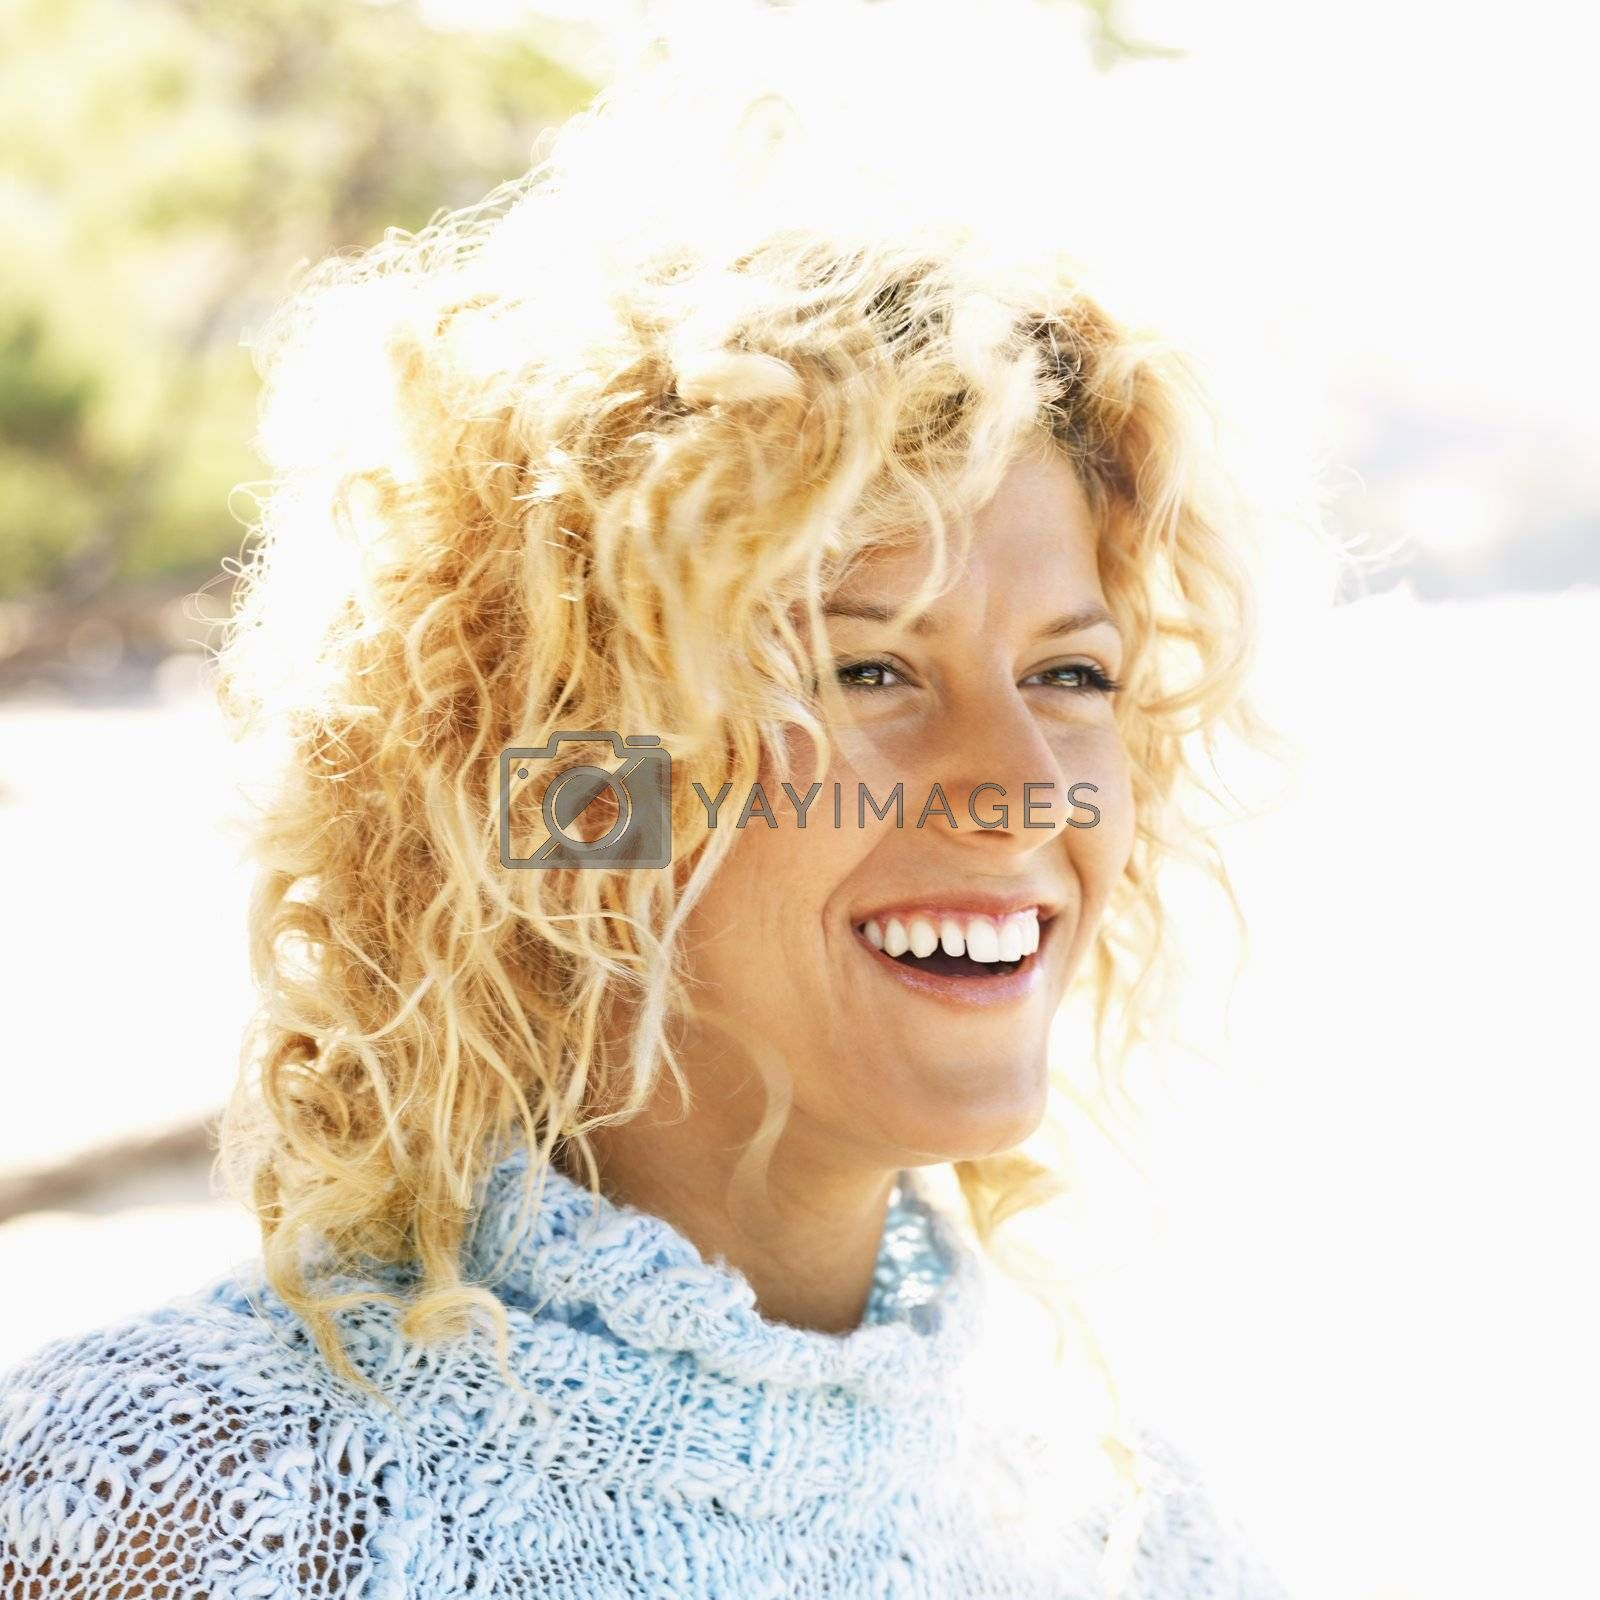 Close up portrait of attractive young blond woman smiling.